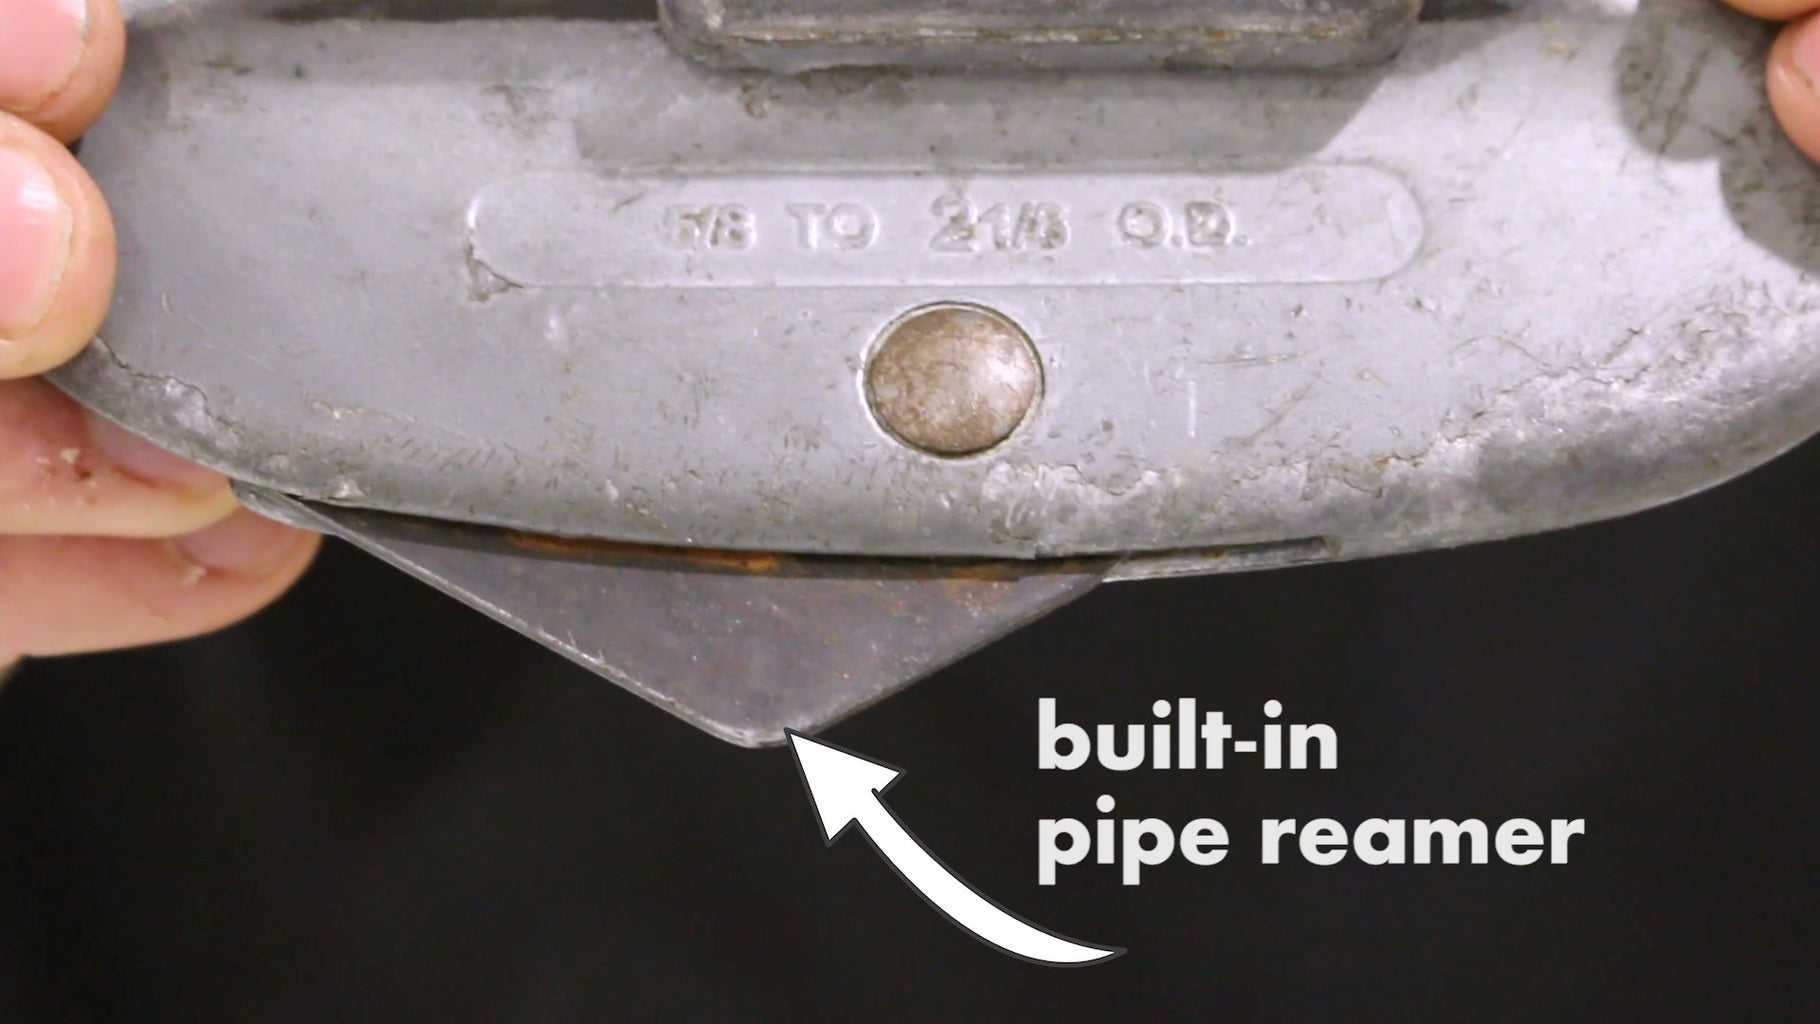 Not Deburring the Inside of Your Pipes